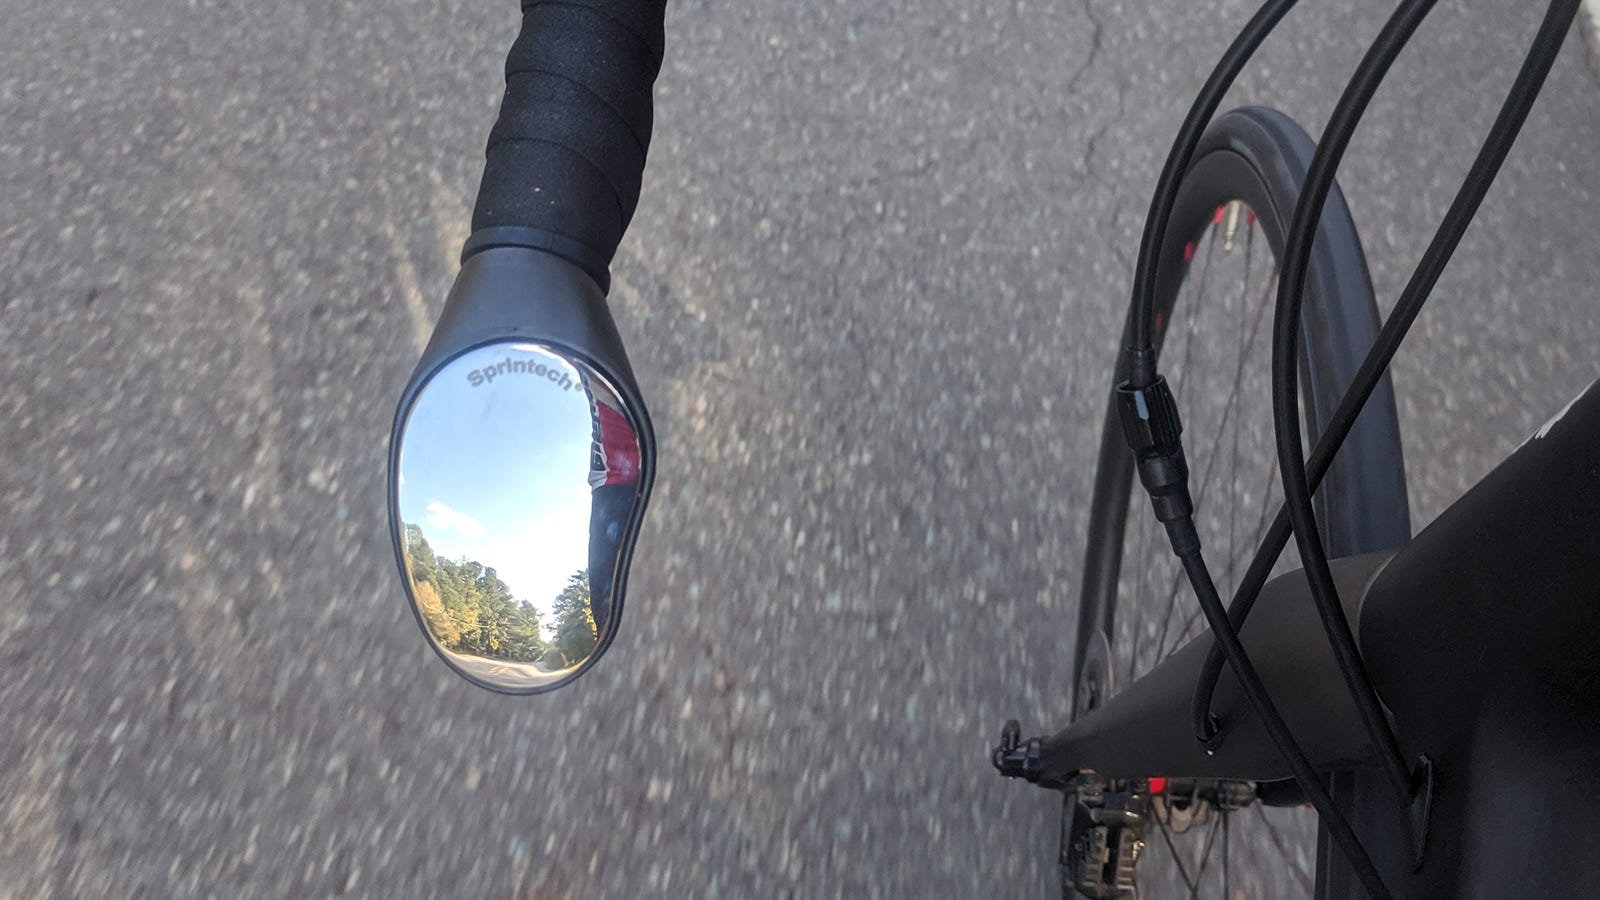 A bicycle mirror attached to a bike.